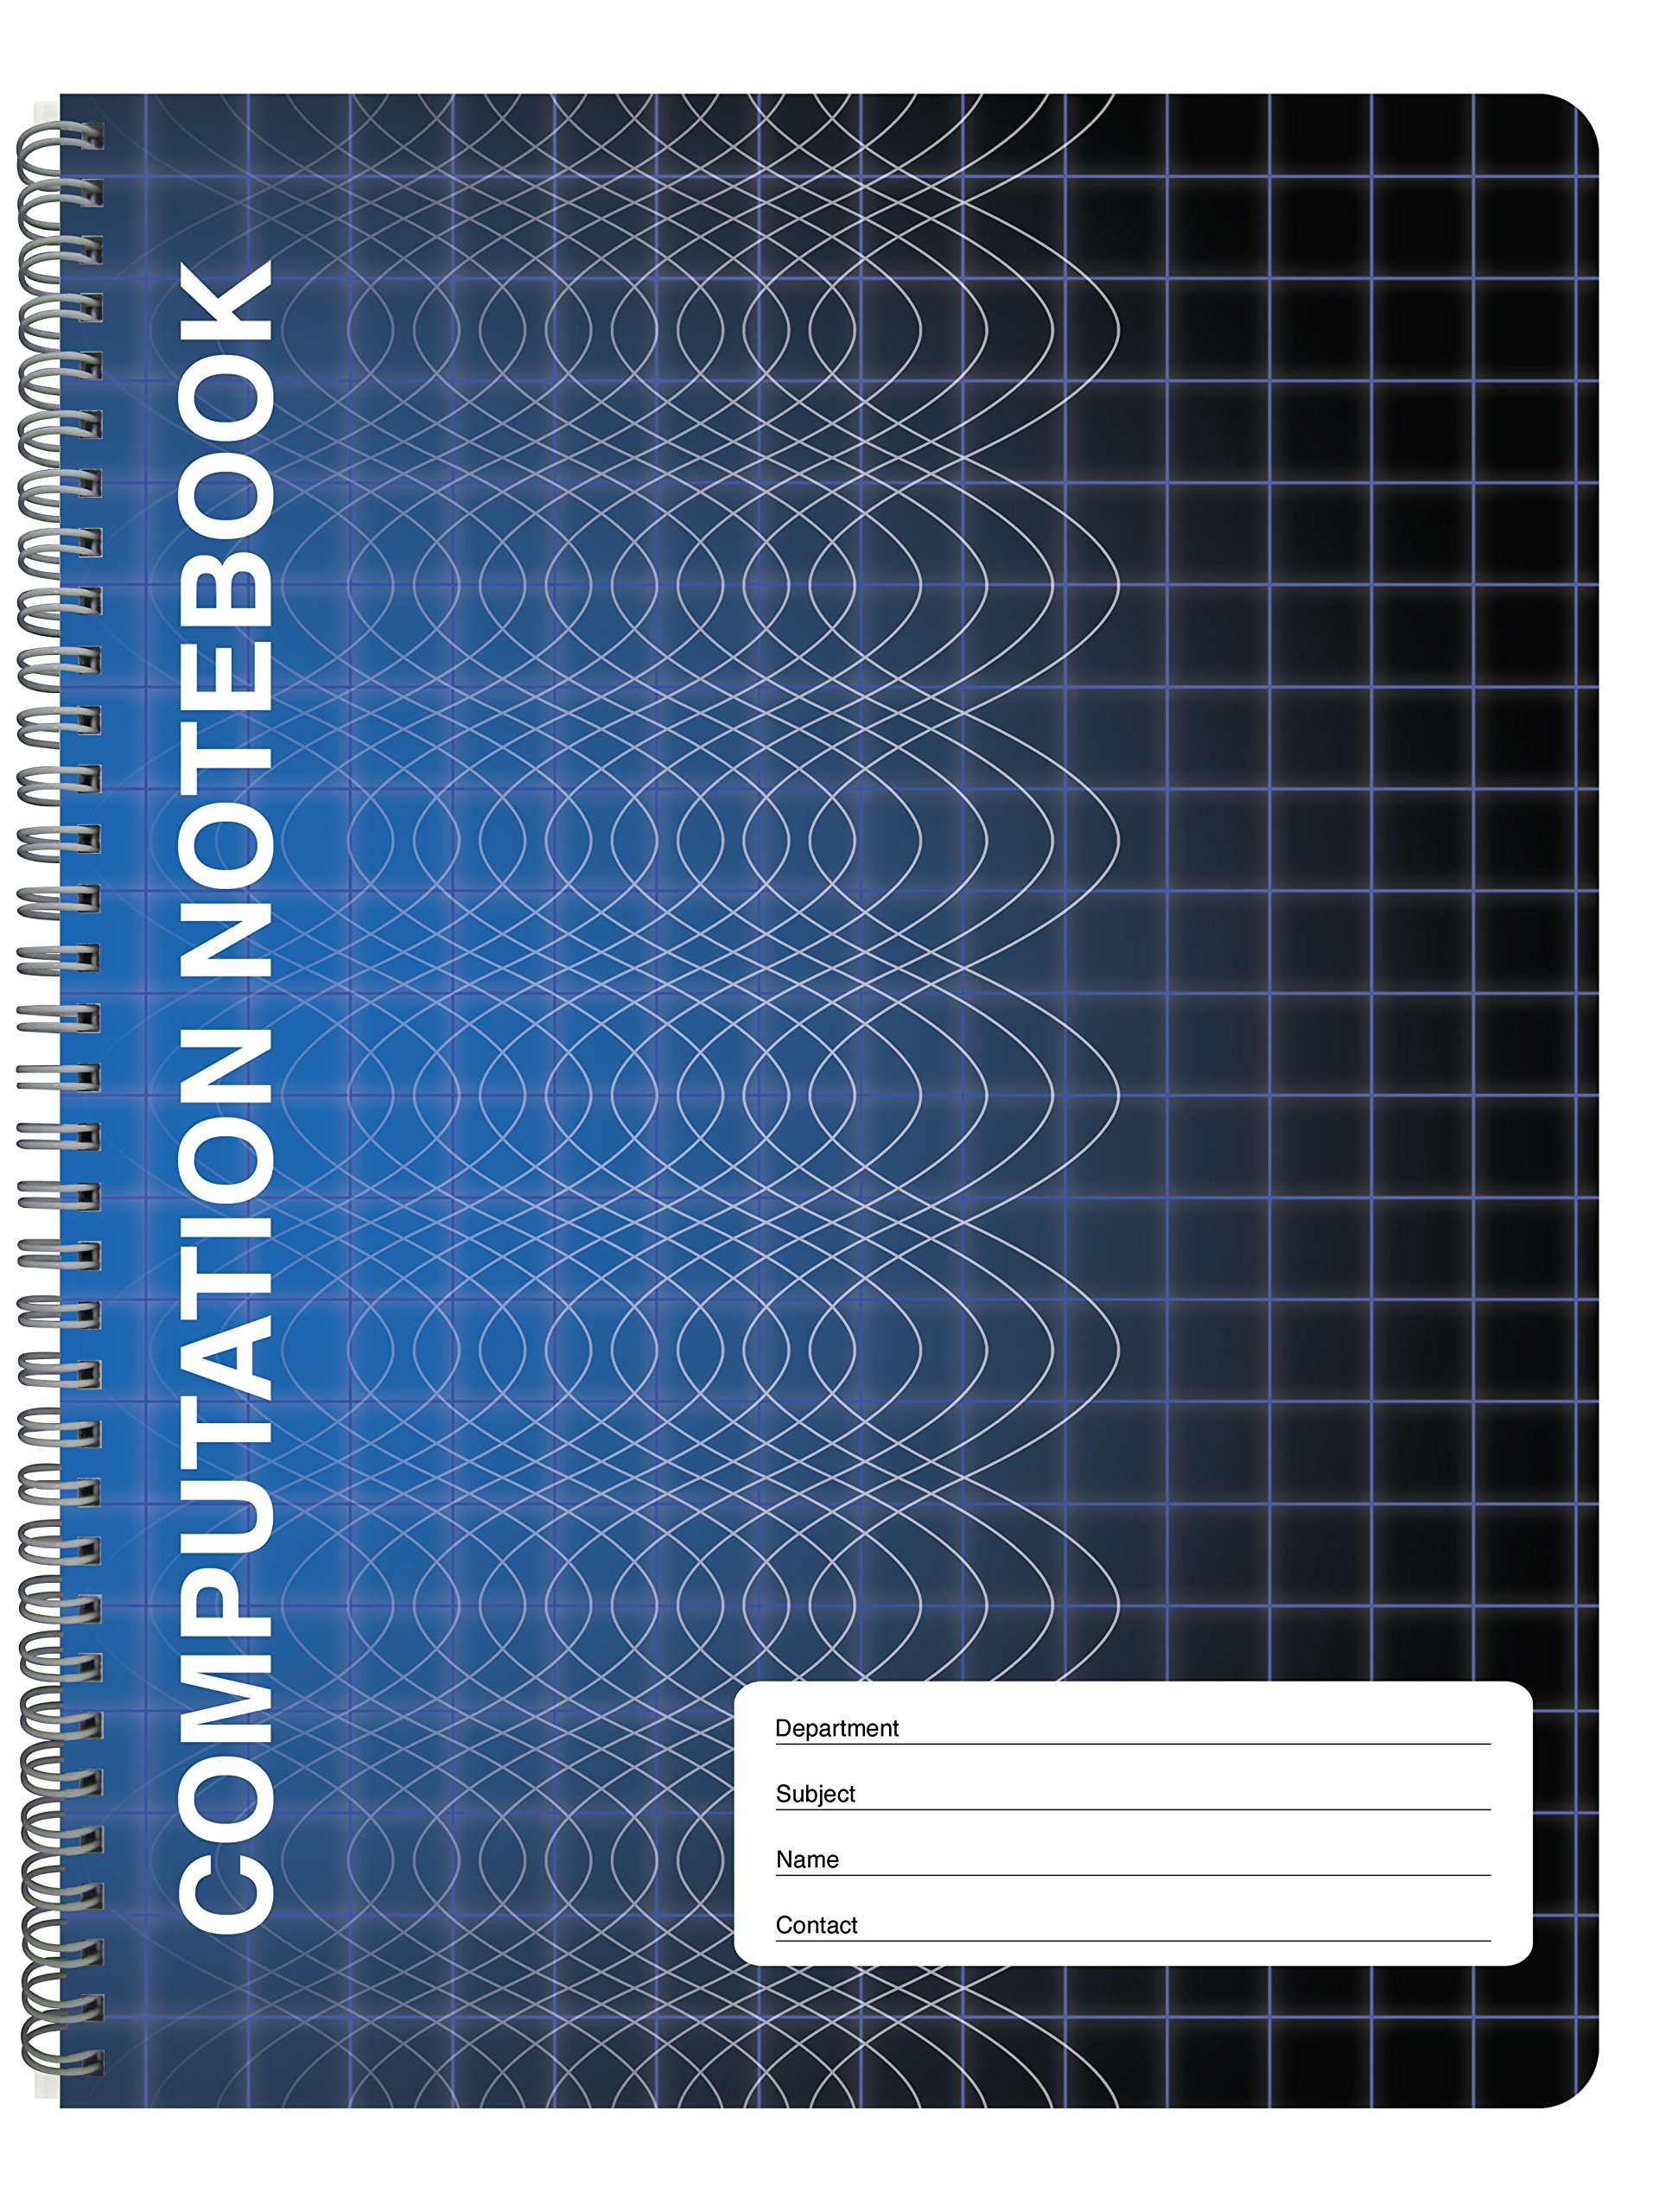 """BookFactory Computation Notebook/Engineering Notebook - 100 Pages (9 1/4"""" X 11 3/4"""") - Scientific Grid Pages, Durable Translucent Cover, Wire-O Binding (COMP-100-CWG-A-(Computation))"""